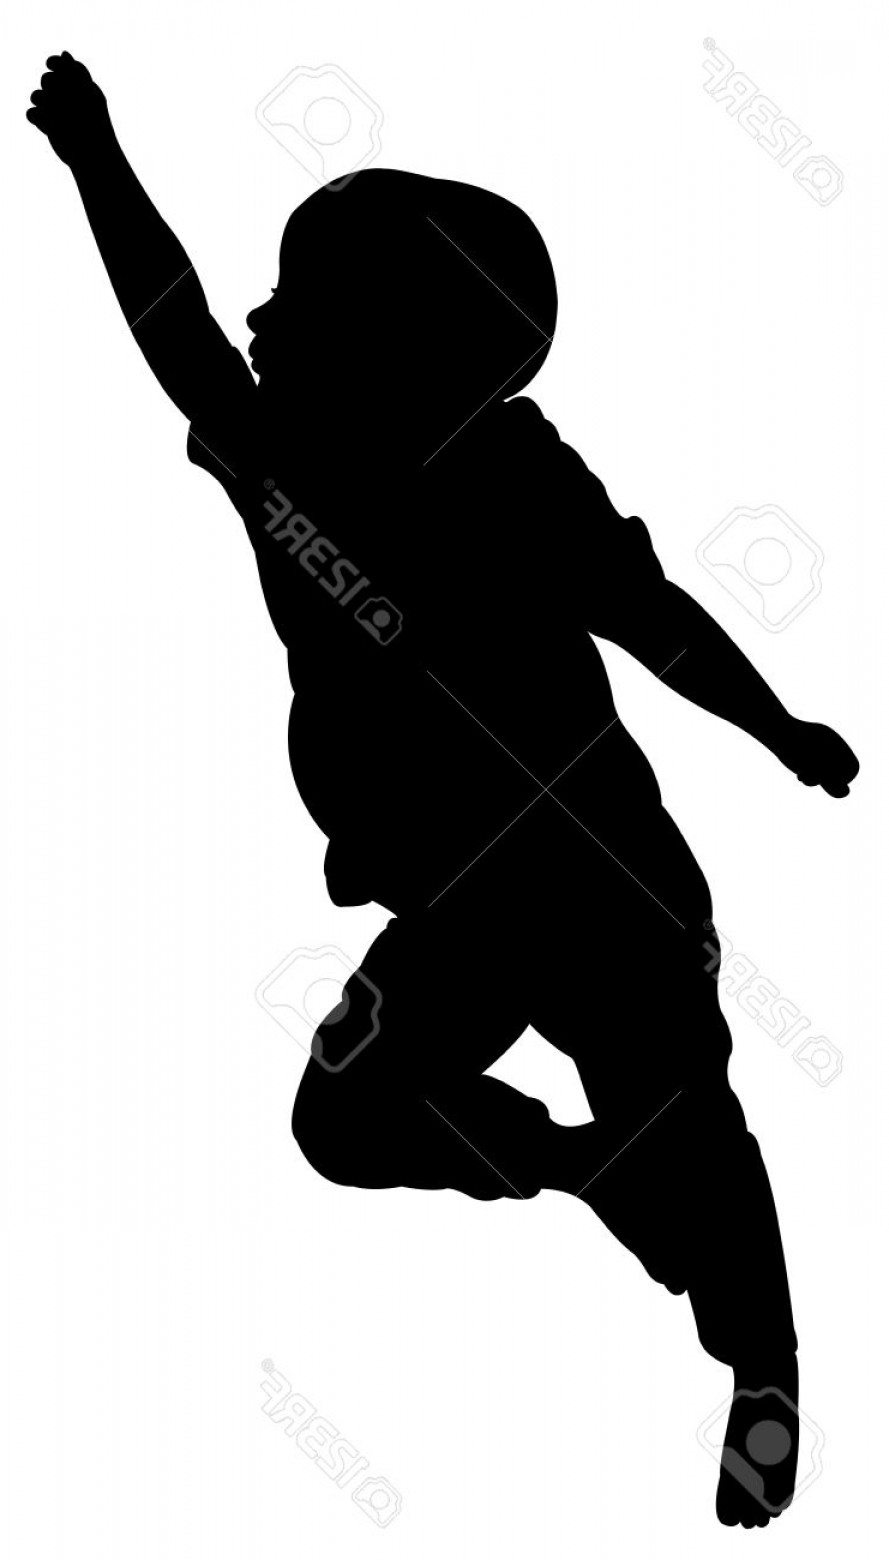 Little Boy Silhouette Vector: Phototwo And A Half Years Old Baby Boy Sleeping Silhouette Vector